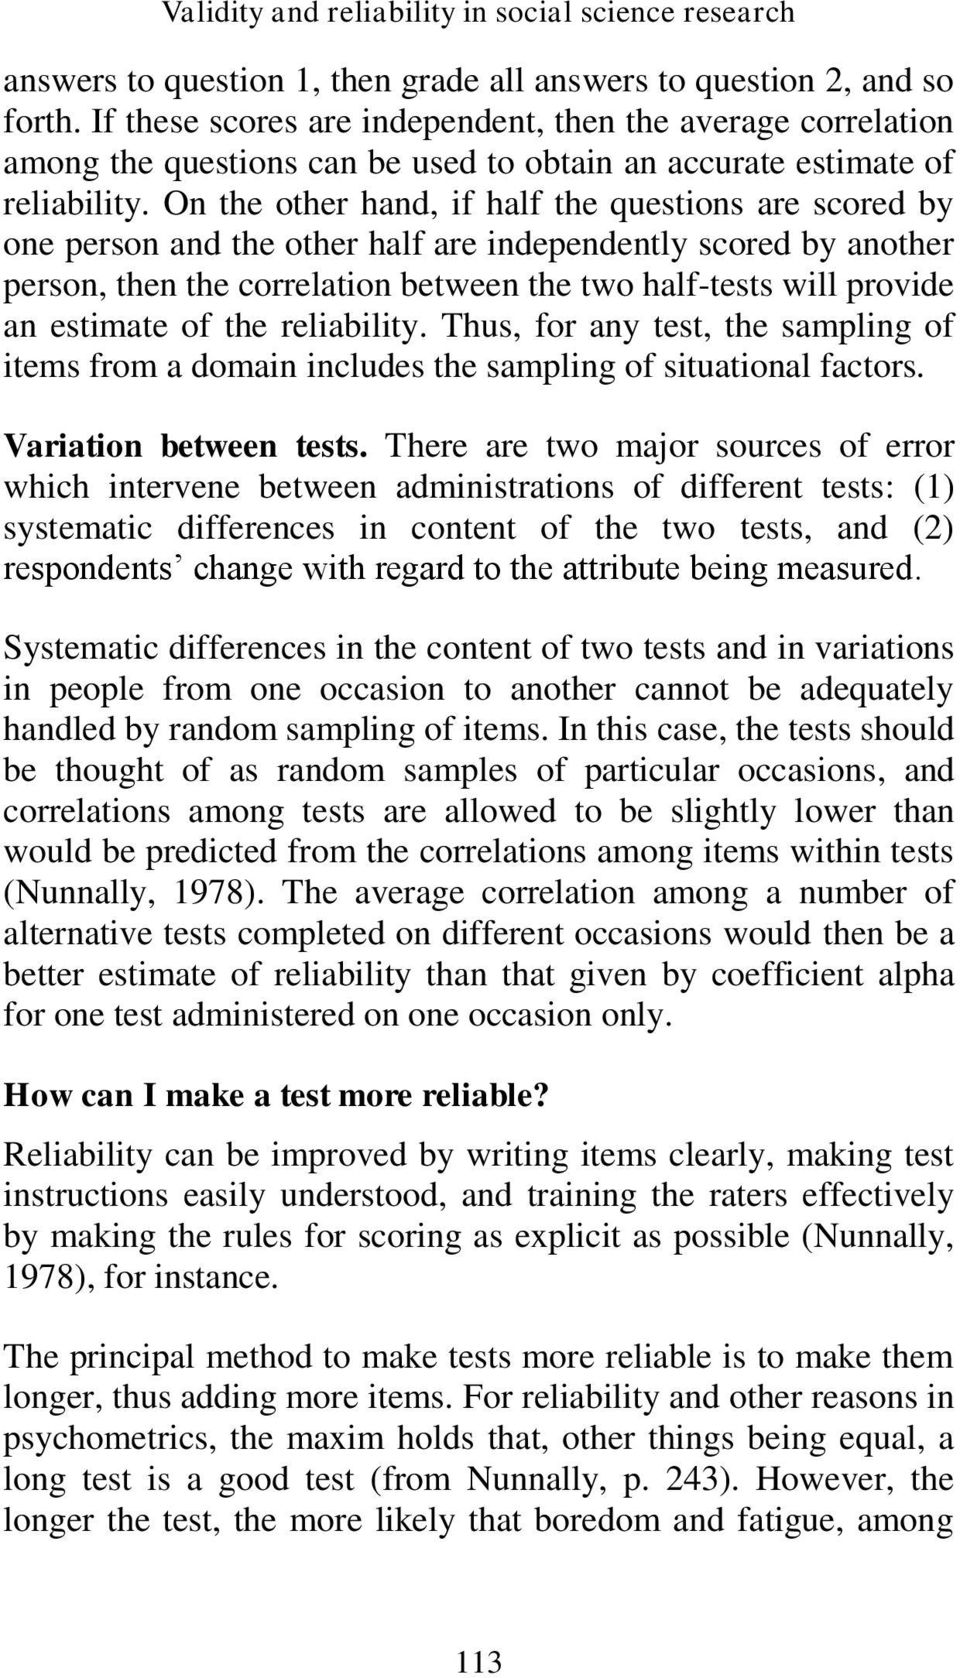 On the other hand, if half the questions are scored by one person and the other half are independently scored by another person, then the correlation between the two half-tests will provide an